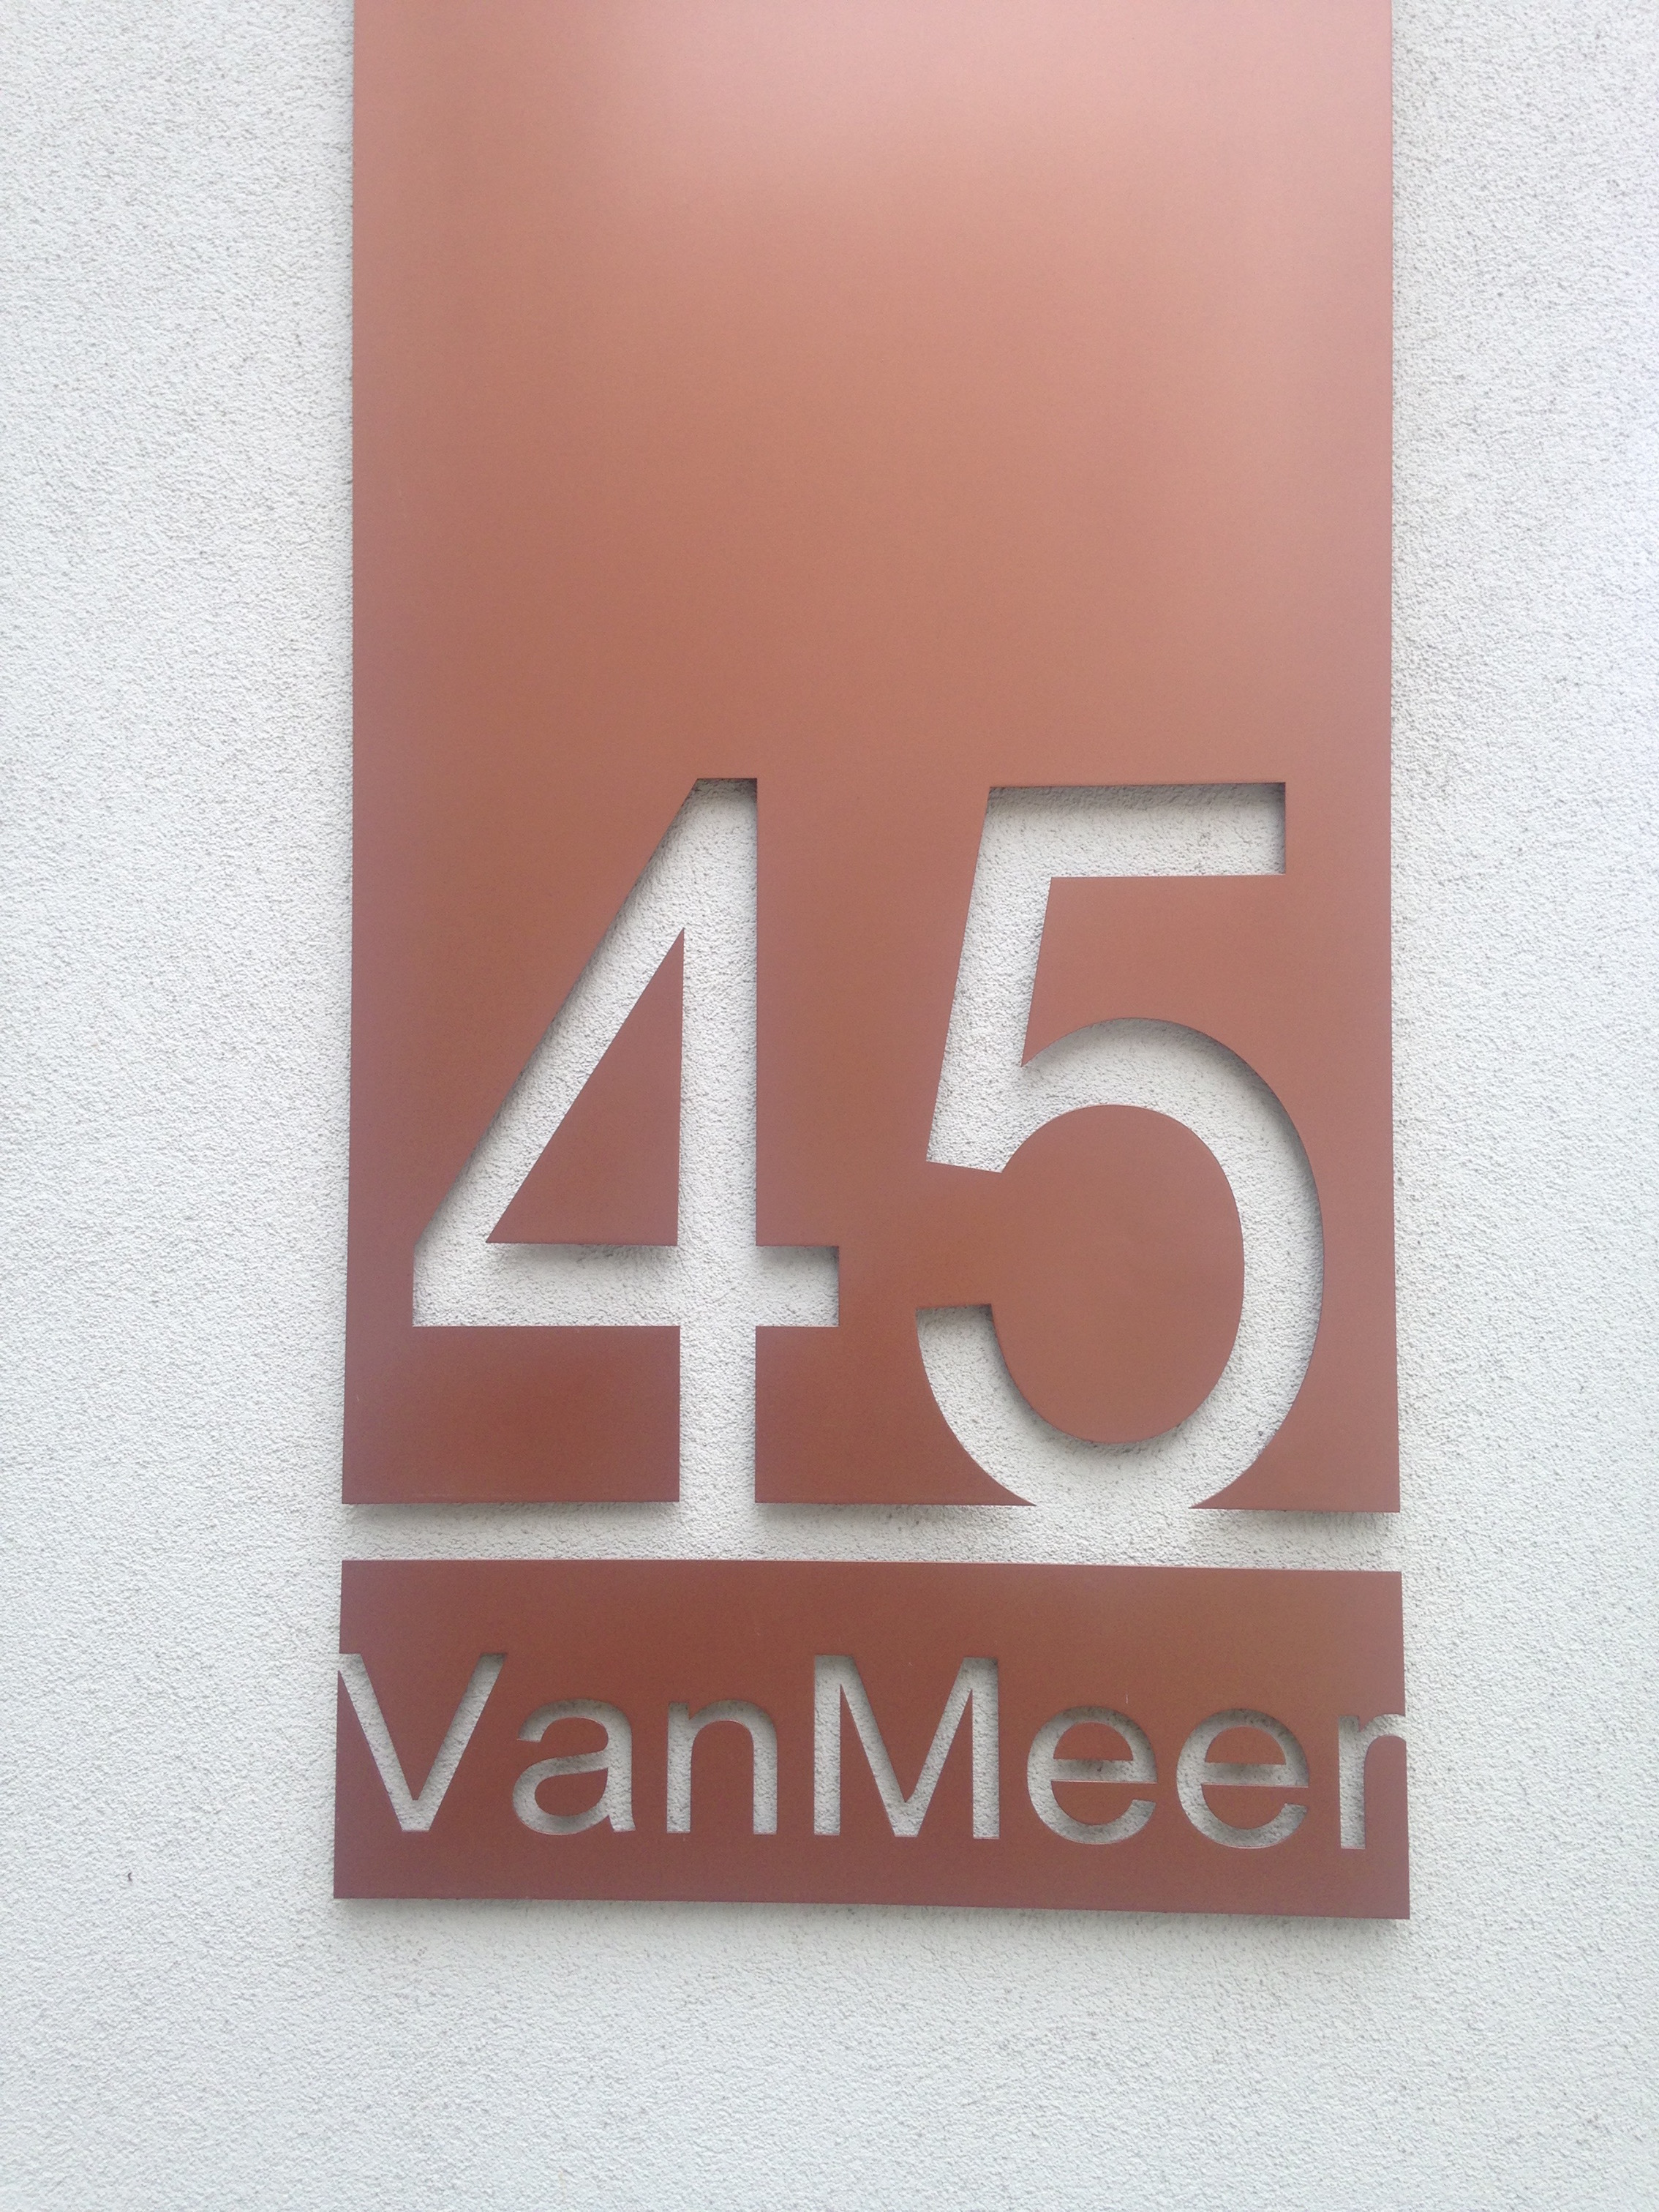 block-number-hamburg.jpg